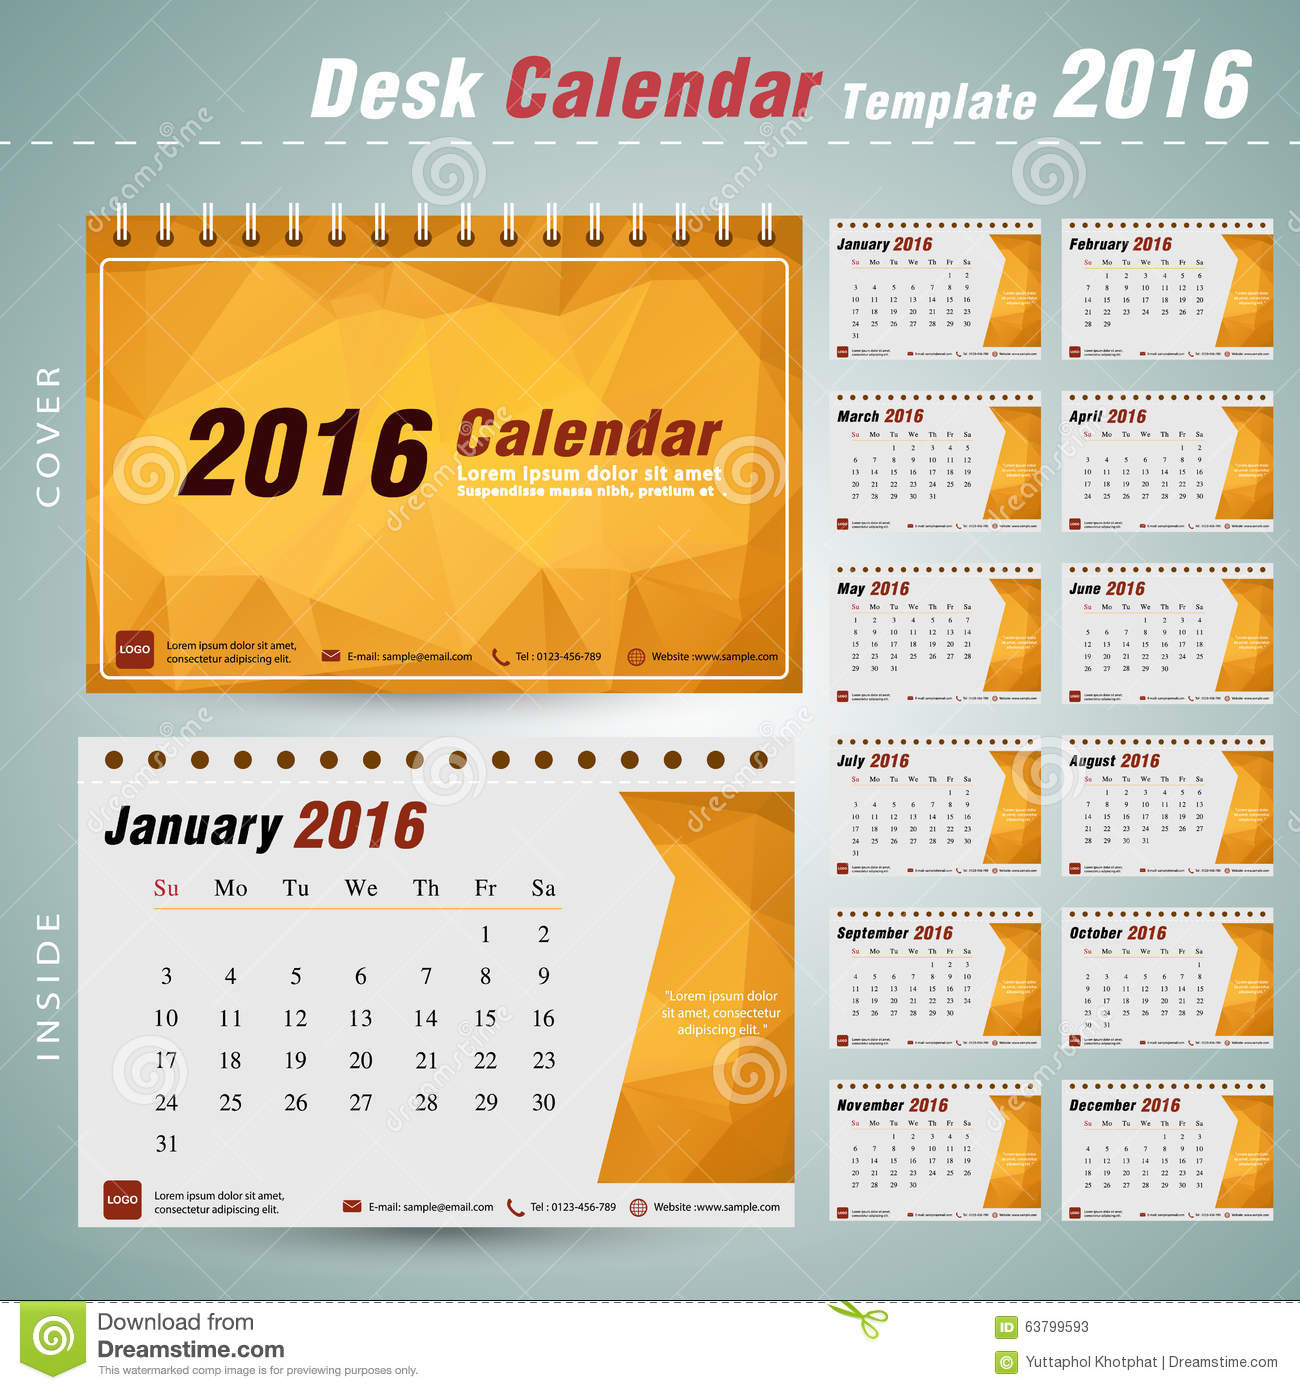 Calendar Design Photo : Desk calendar vector design template with abstract